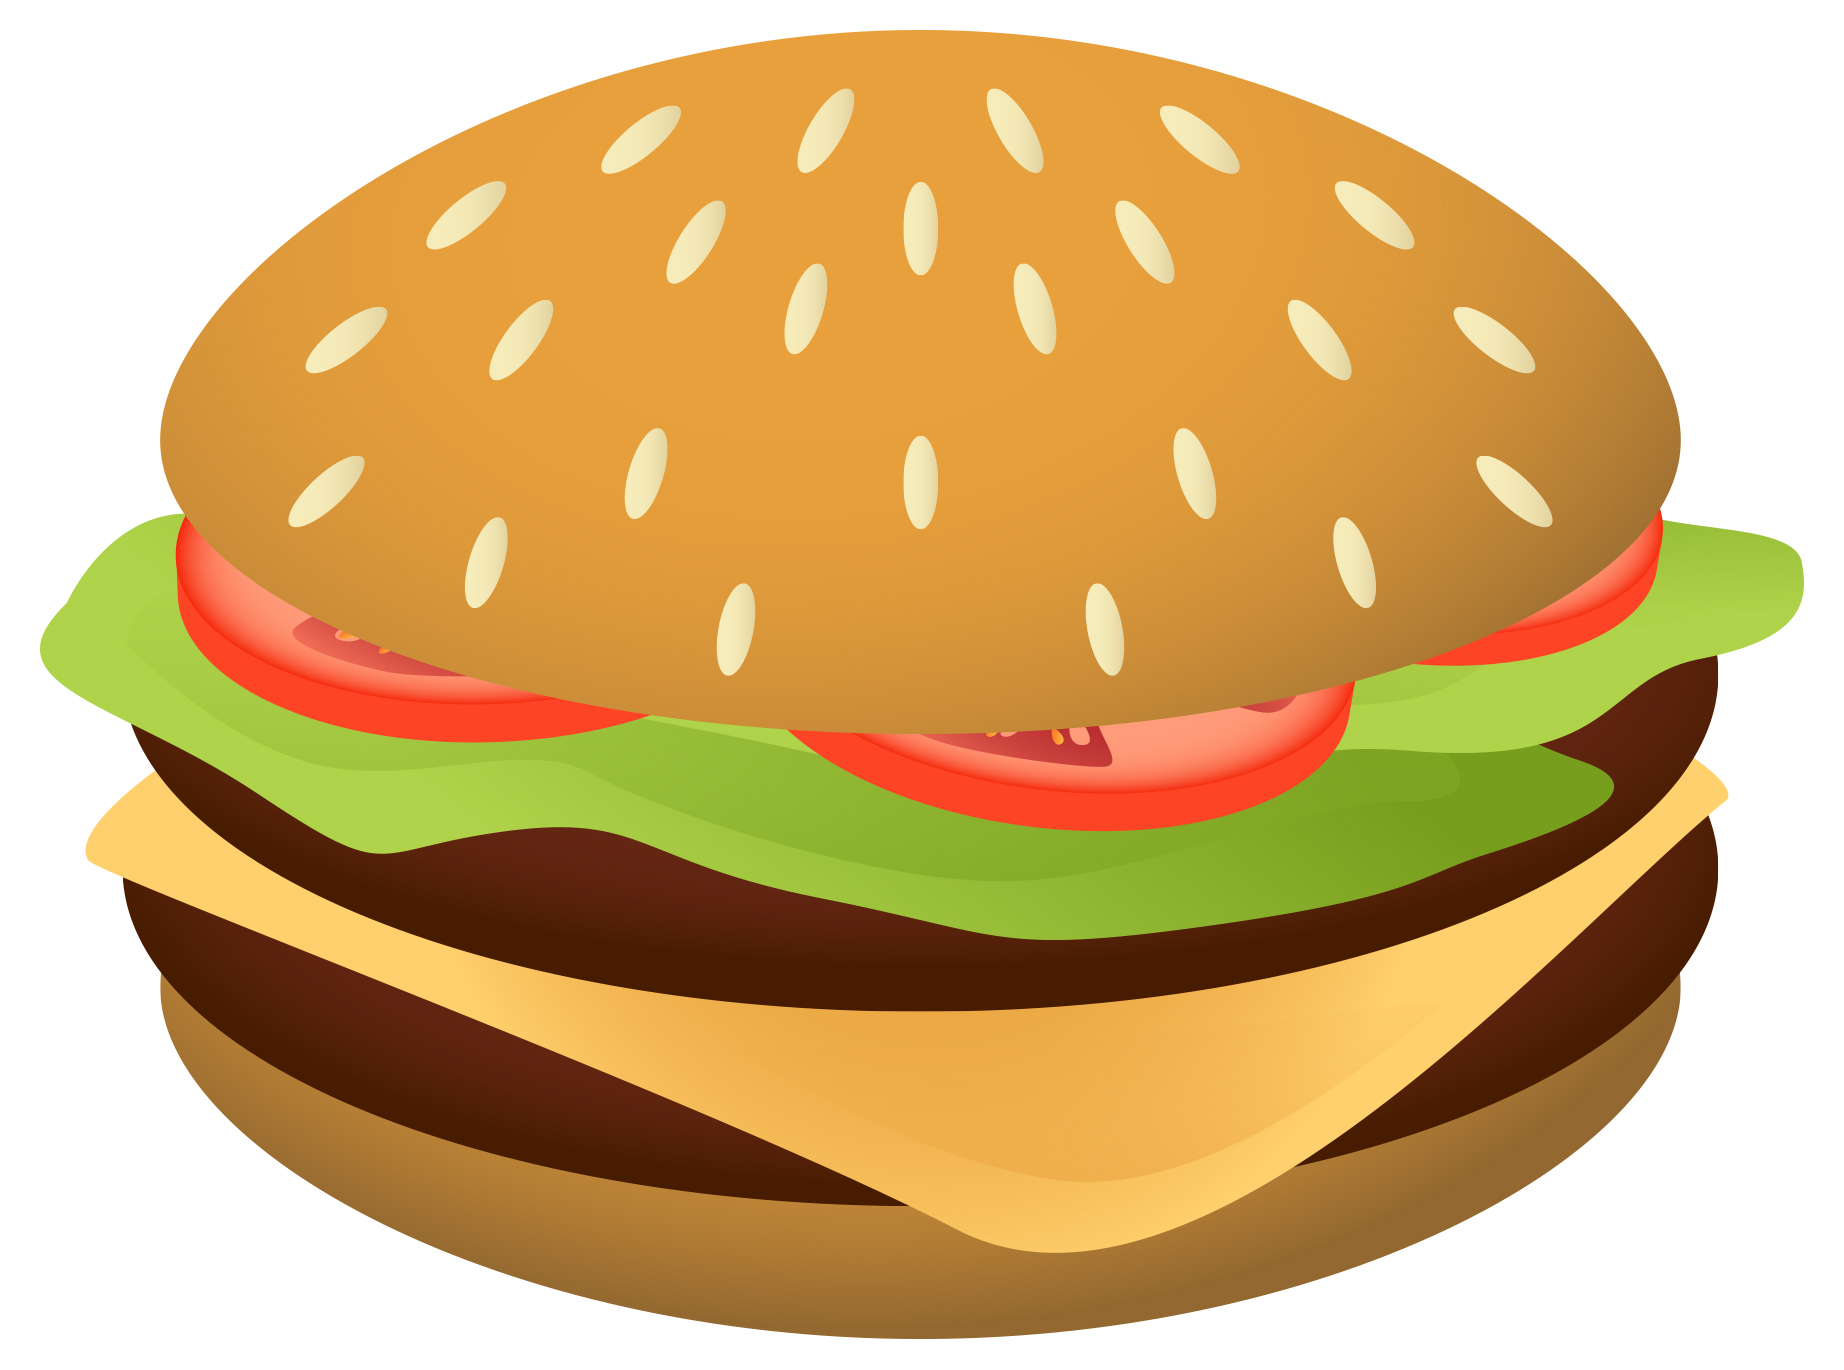 View Burger Jpg Clipart Free Nutrition And Healthy Food Clipart